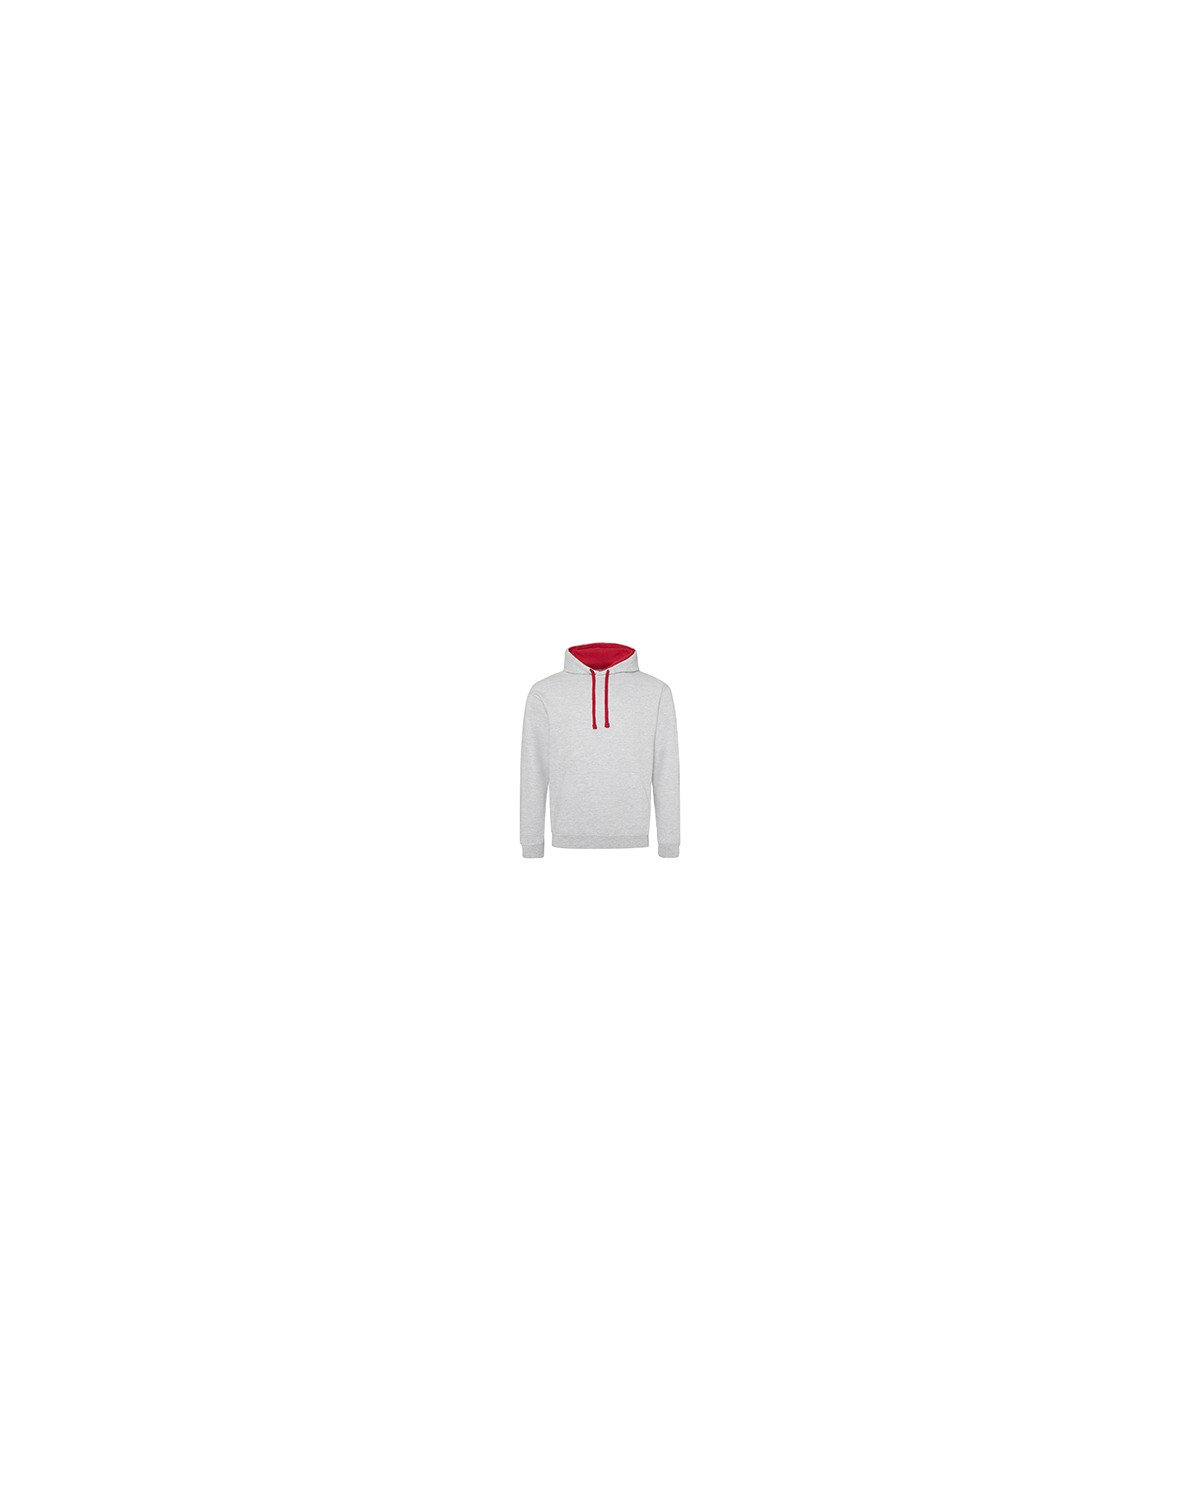 JHA003 Just Hoods By AWDis HTH GRY/ FIRE RD